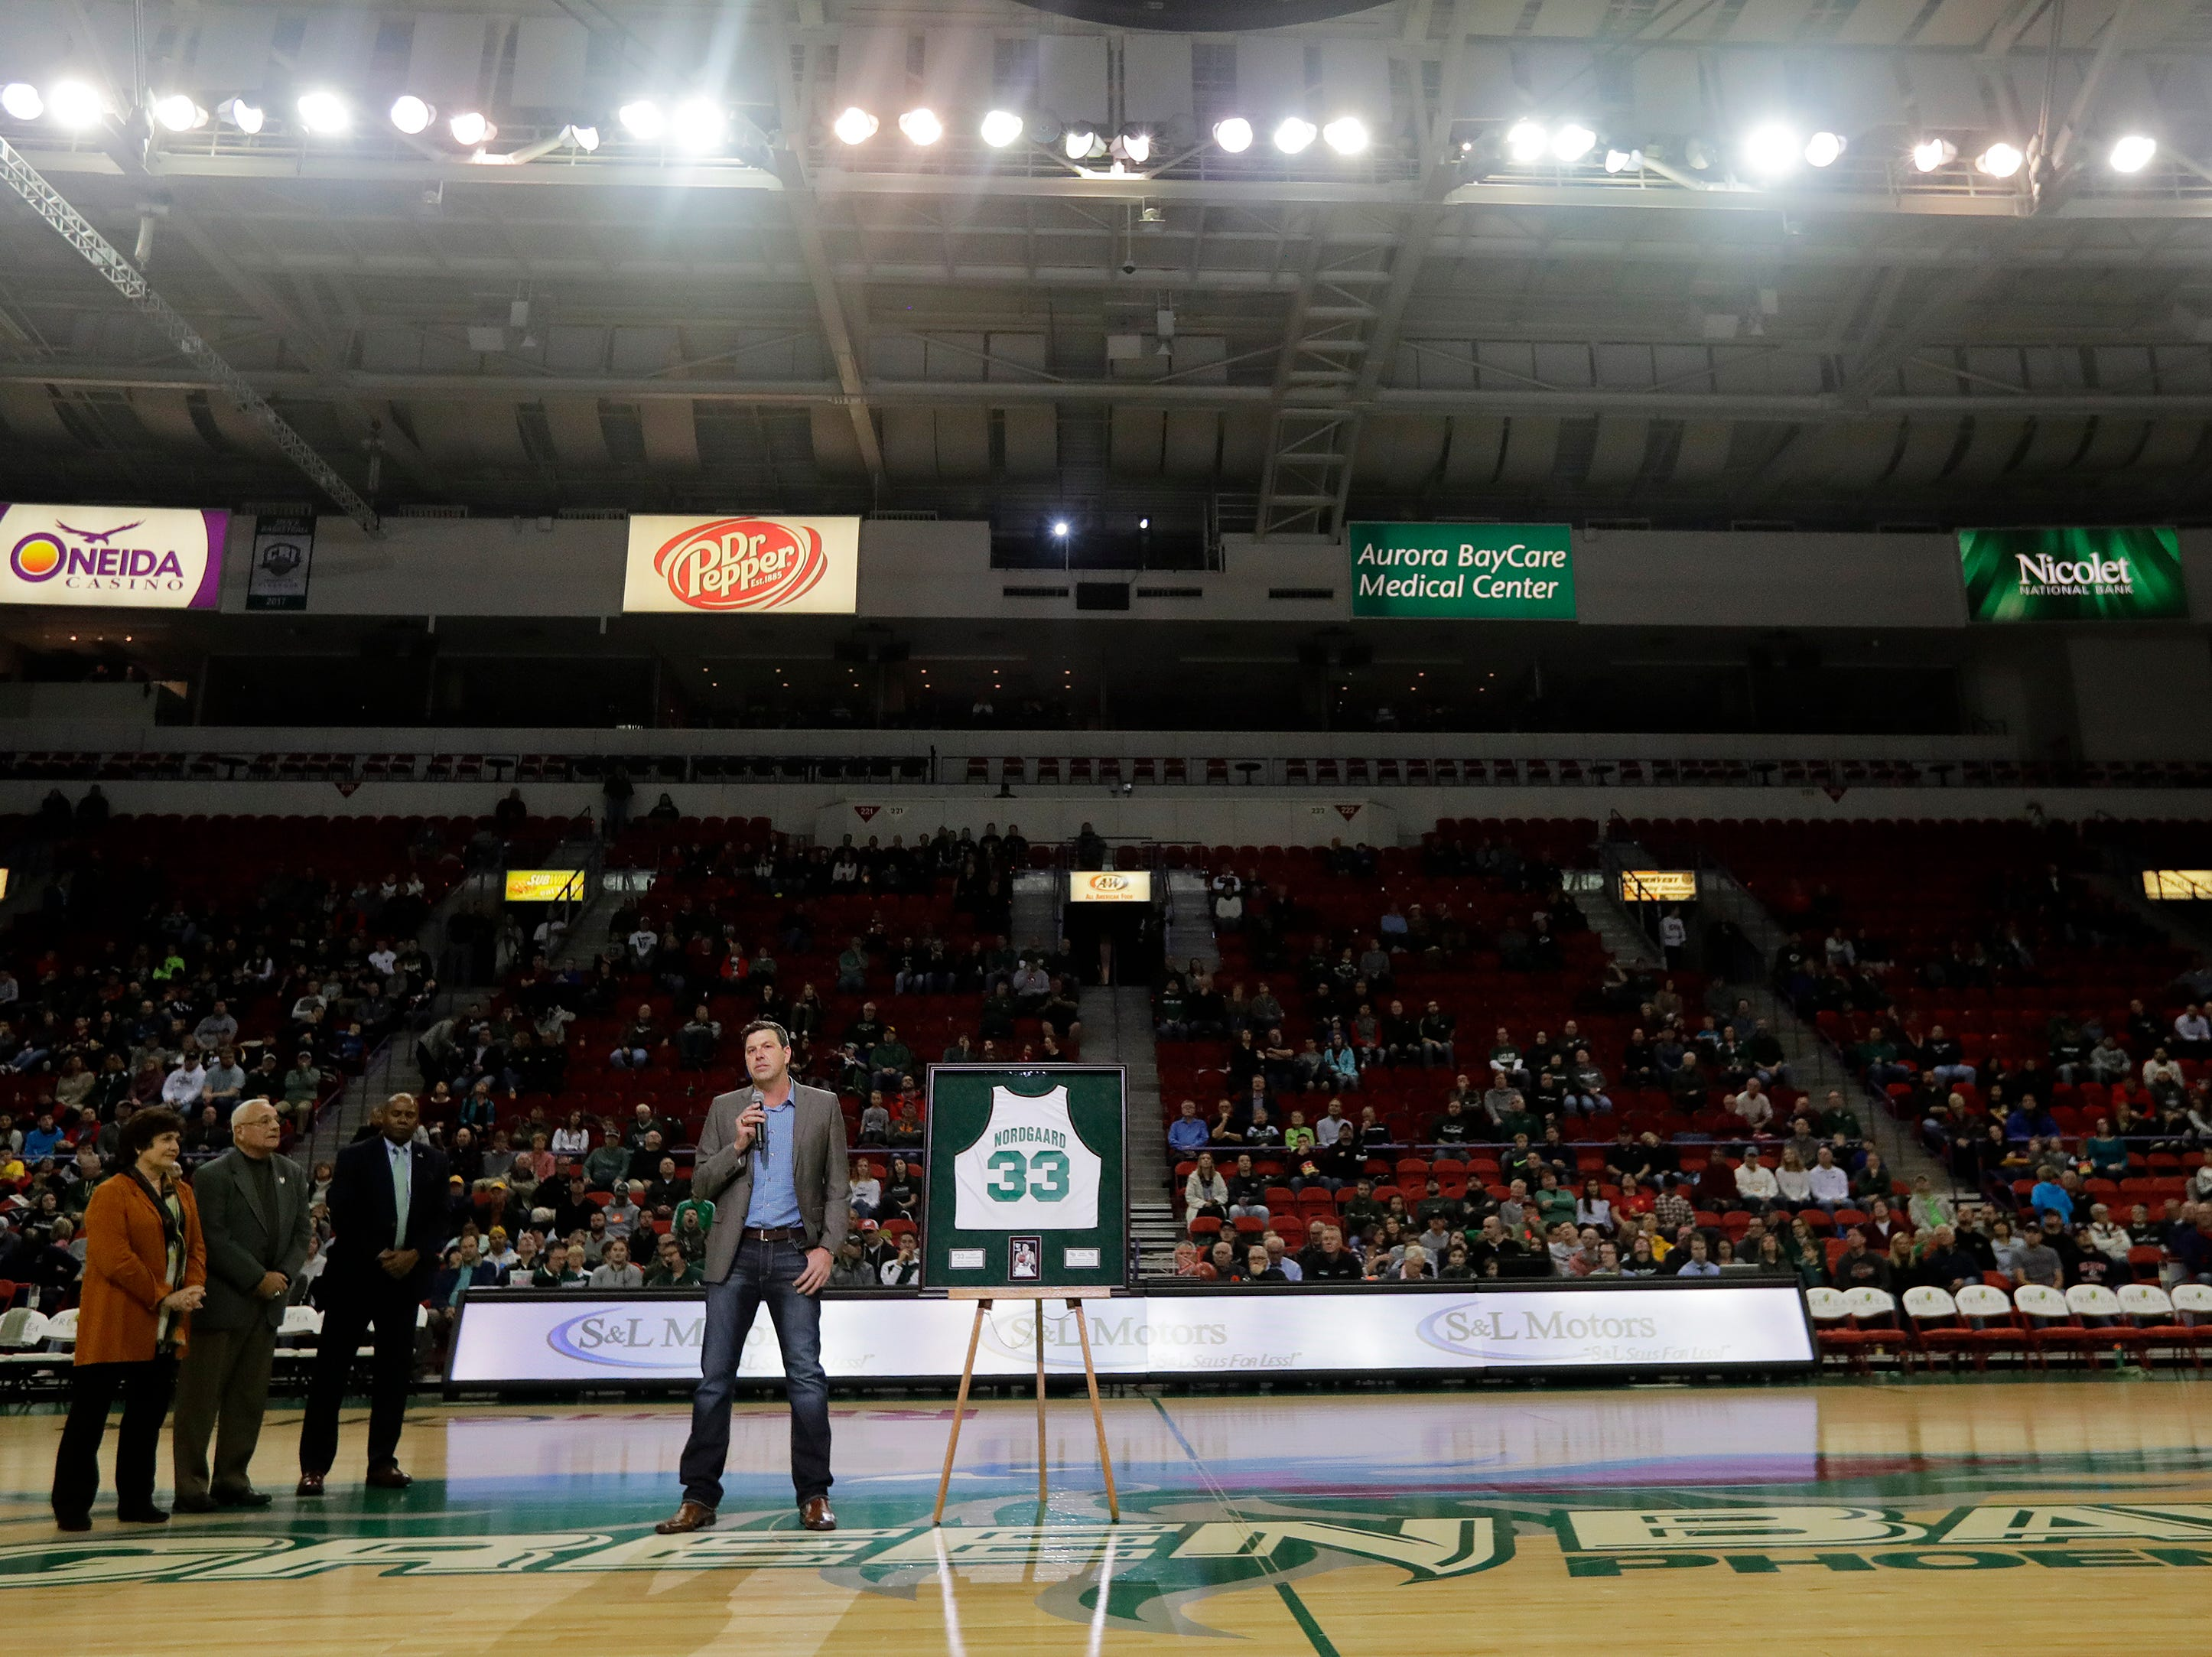 Former UW-Green Bay basketball player Jeff Nordgaard speaks to the crowd after his jersey was retired during halftime of a NCAA basketball game at the Resch Center on Saturday, December 1, 2018 in Ashwaubenon, Wis.